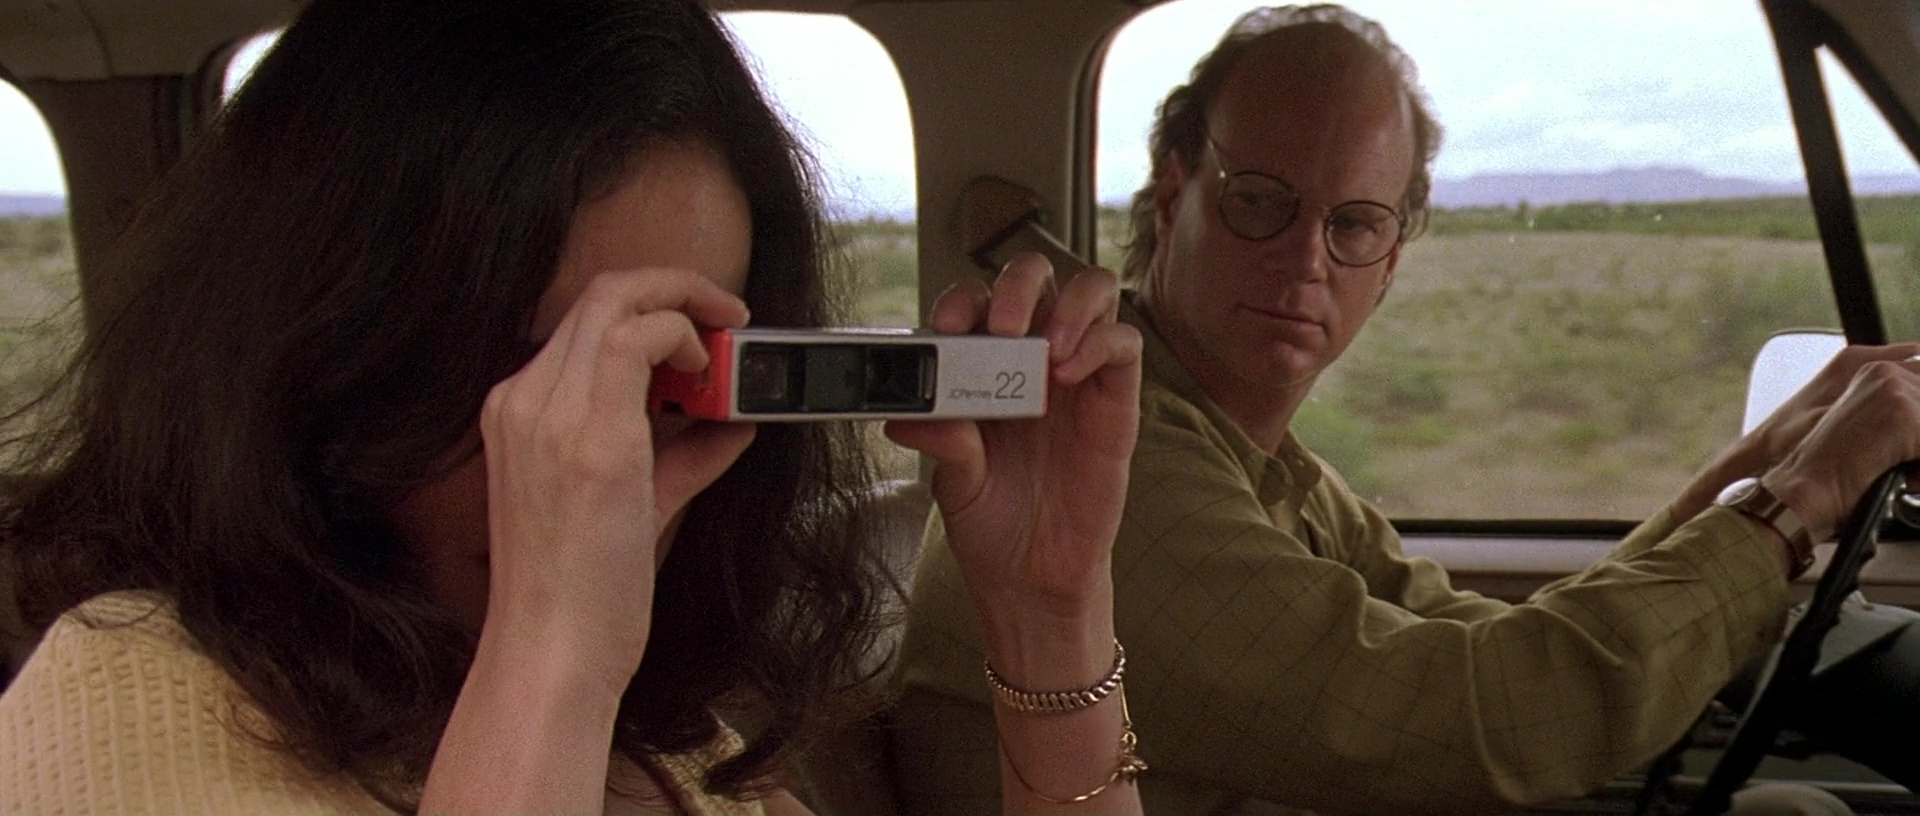 New Range Rover >> J. C. Penney Photo Camera Used by Jennifer Tilly in The